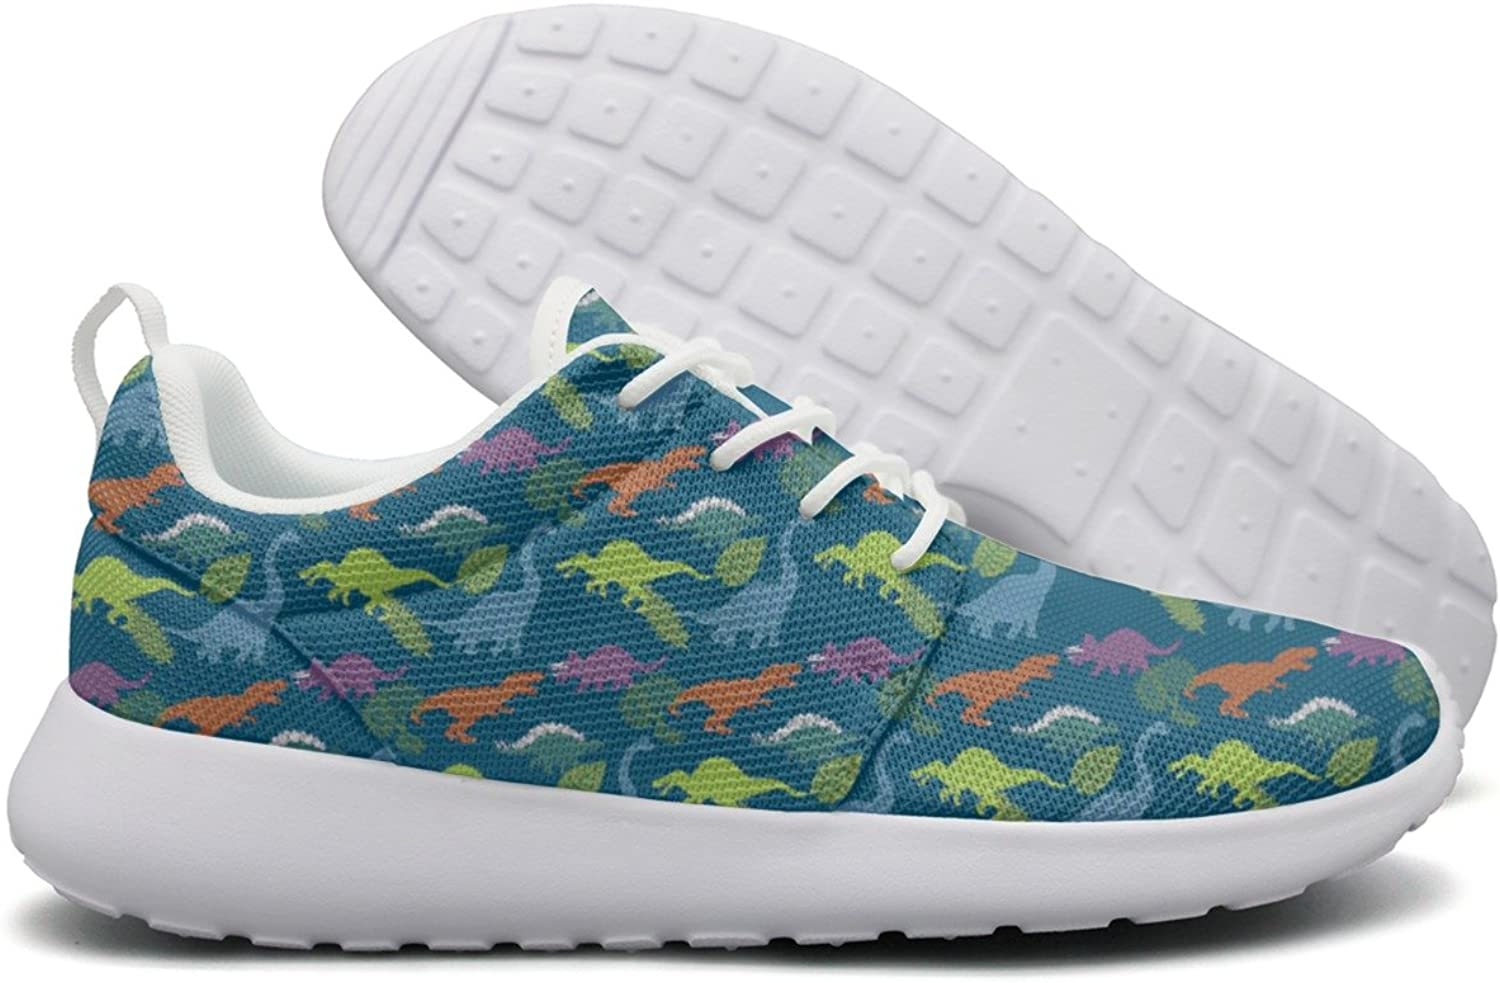 Dinosaur Birthday Decorations Mens Camping Running shoes Cool colorful